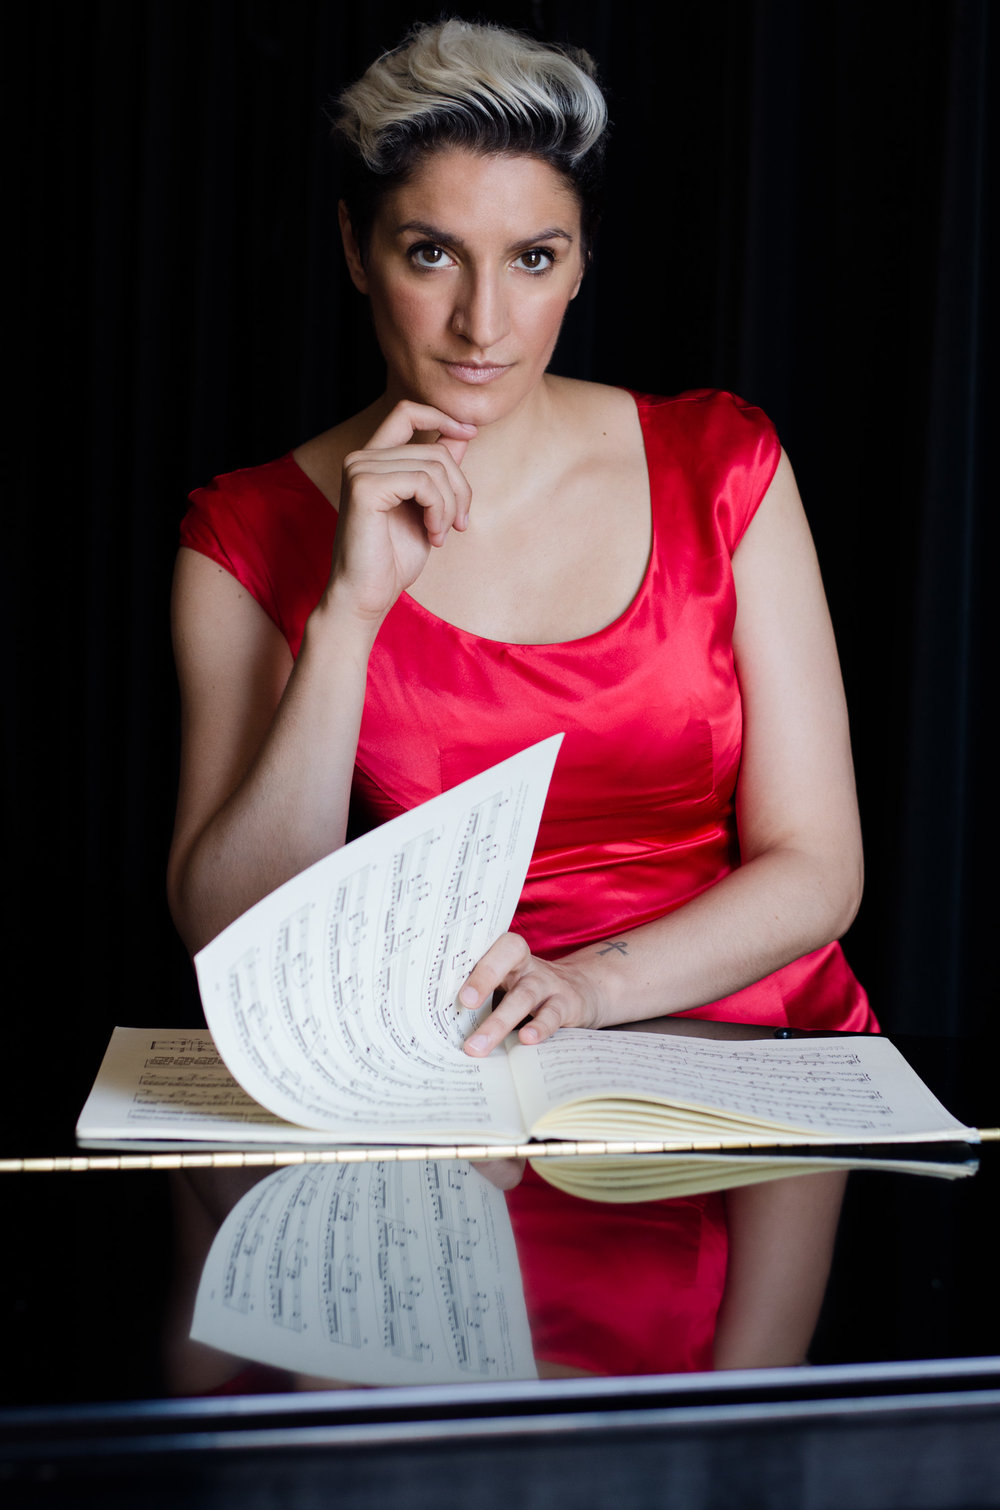 - PROGRAM: J.S. Bach: Piano Partita No. 1 in B Flat Major BWV 825; R. Schumann: Papillons Op. 2; L. van Beethoven: Piano Sonata No 31 in A Flat Major Op.110Noted Italian pianist, Francesca Khalifa performs some of the most beautiful Classical repertoire of all times.$10 - $20For information and booking click here.